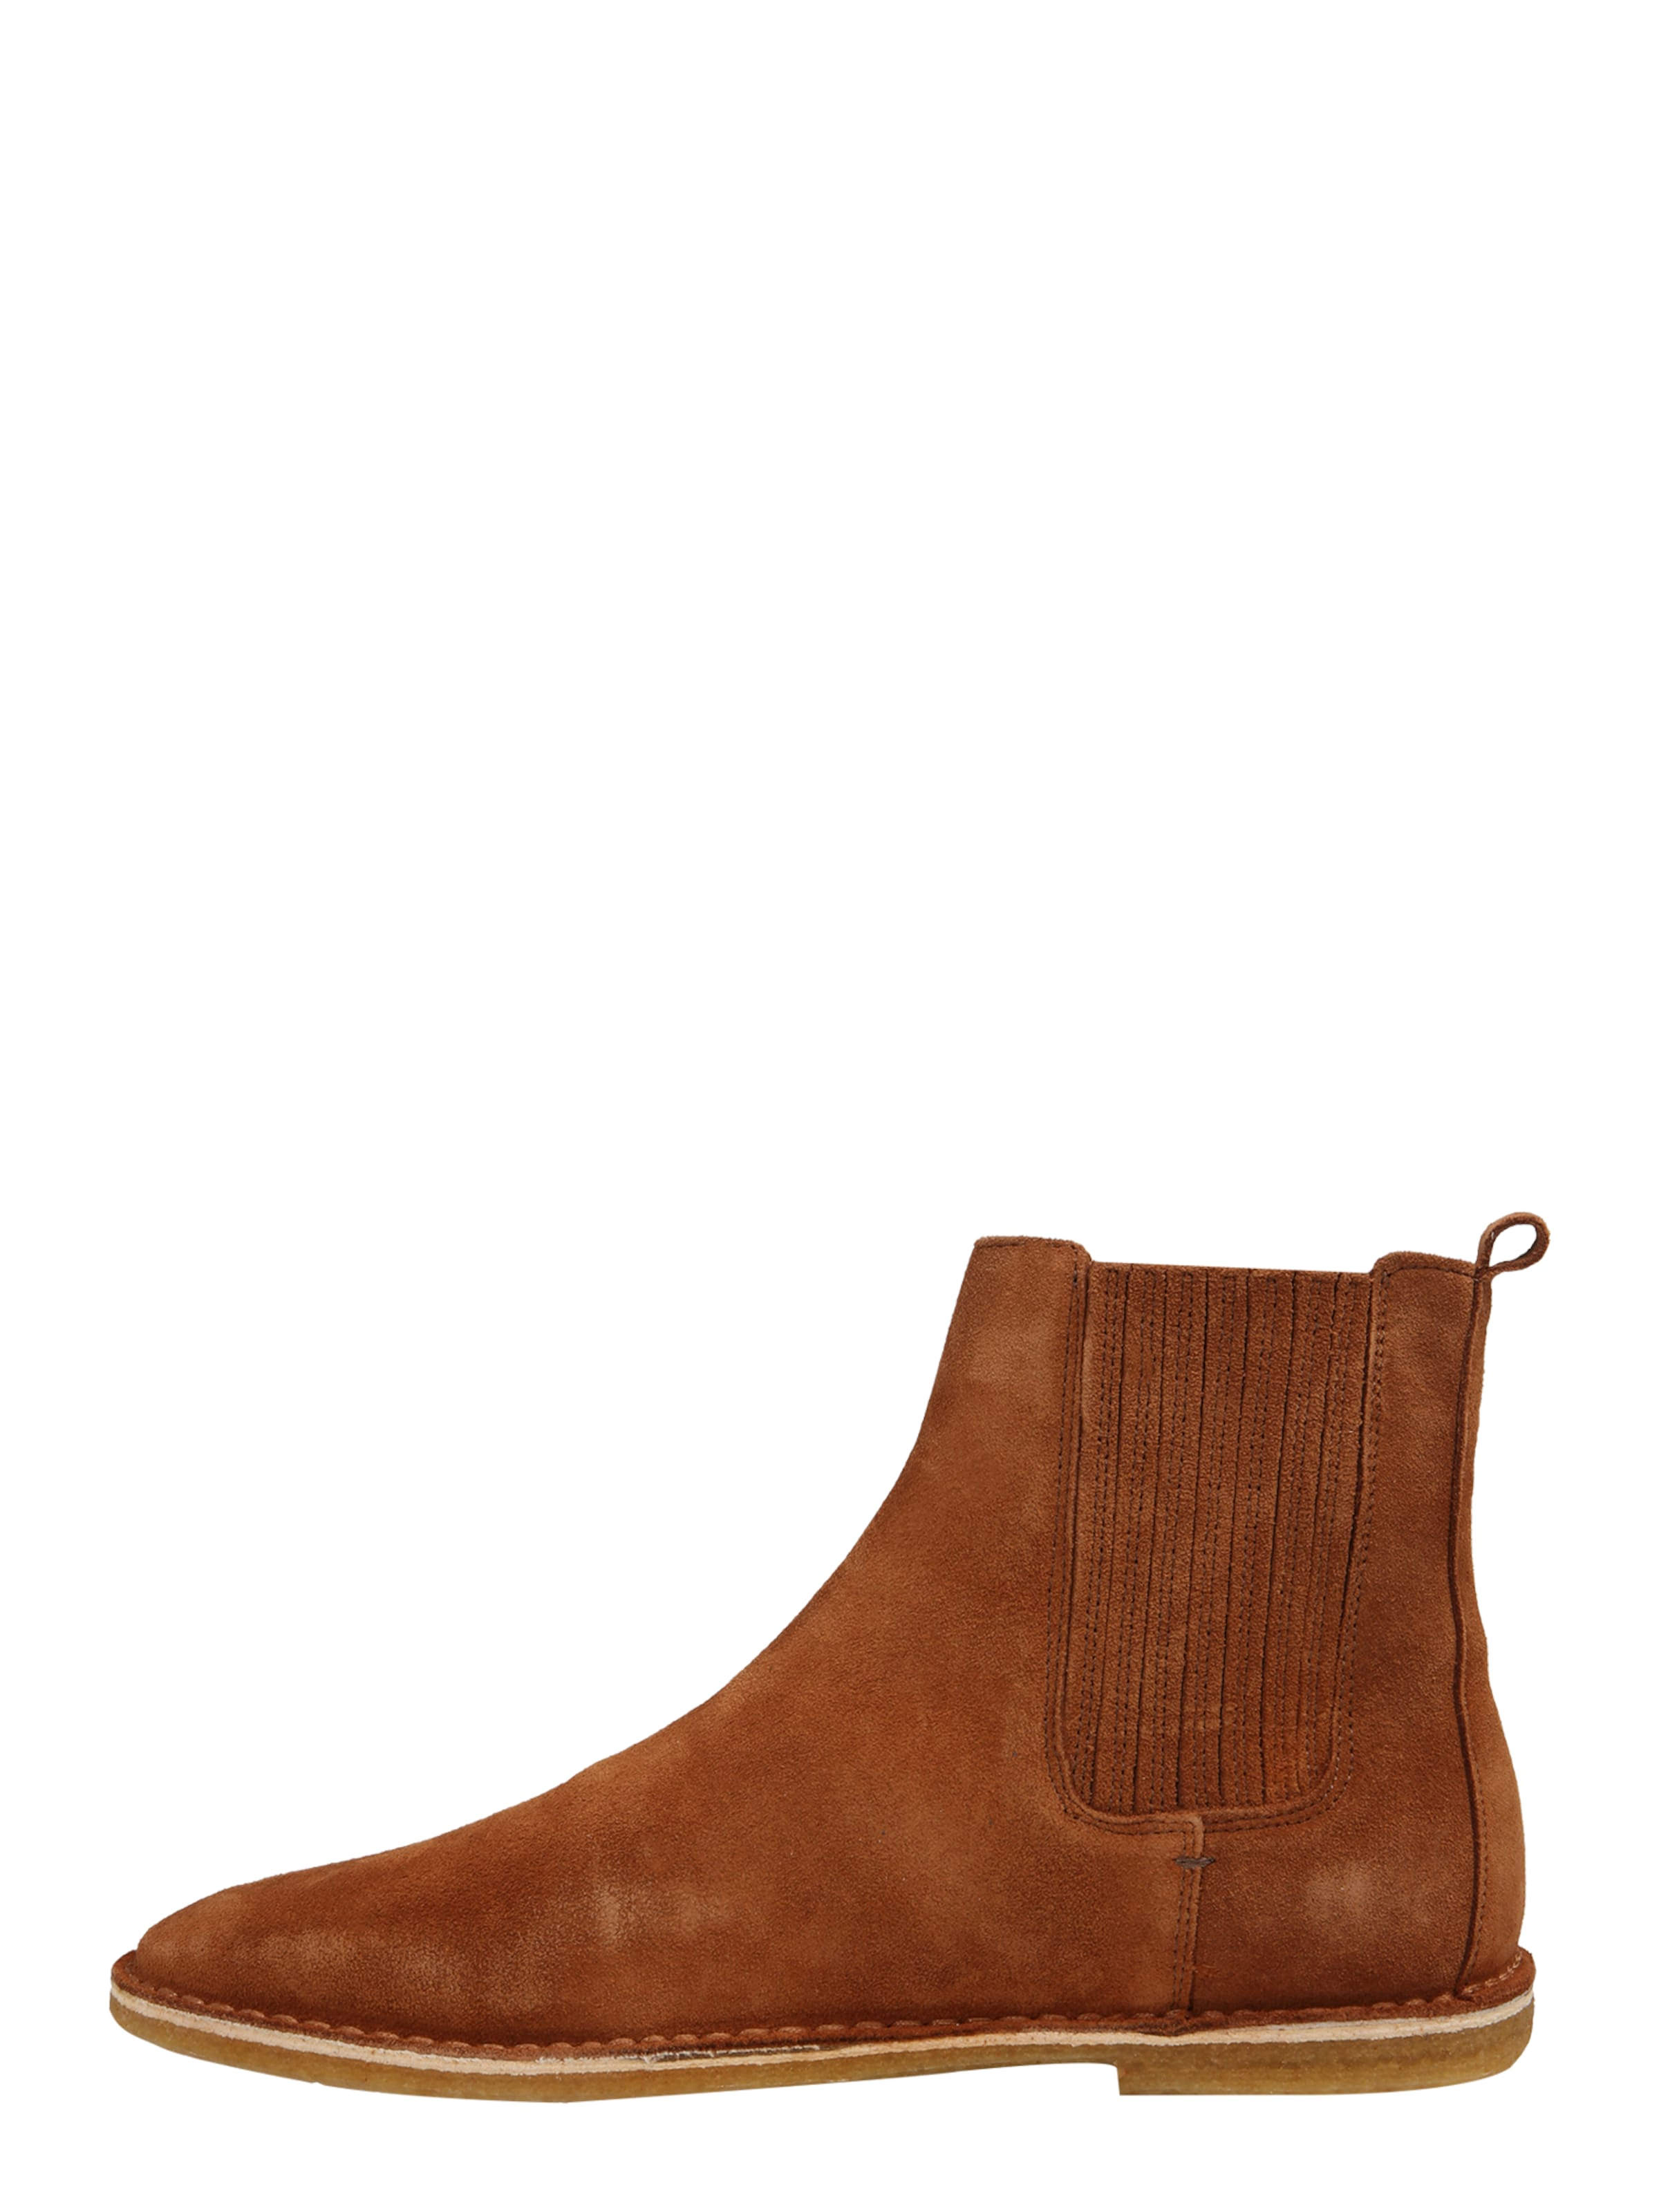 You In Lederboots Cognac Magic X 'keno' About Fox zGjpUVLqSM